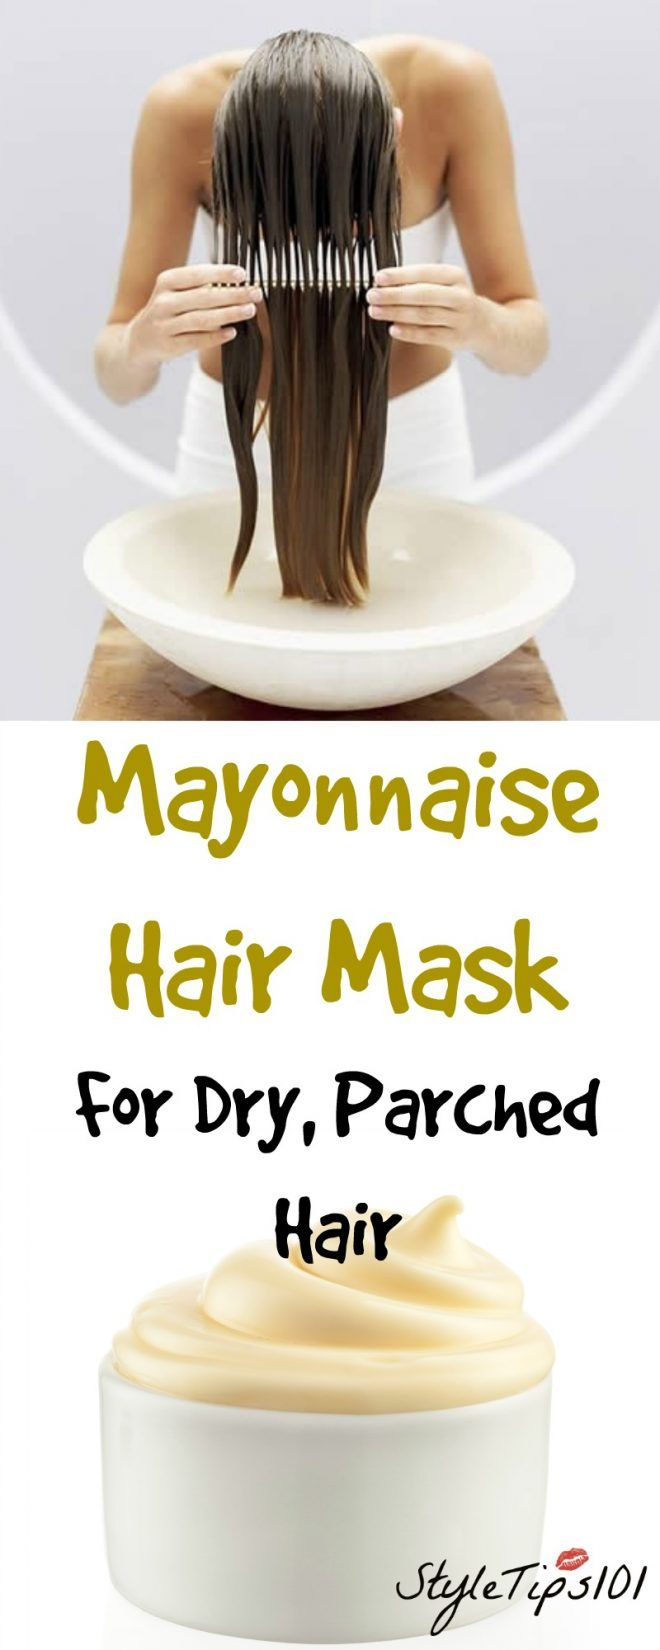 How do you remove mayonnaise from hair?